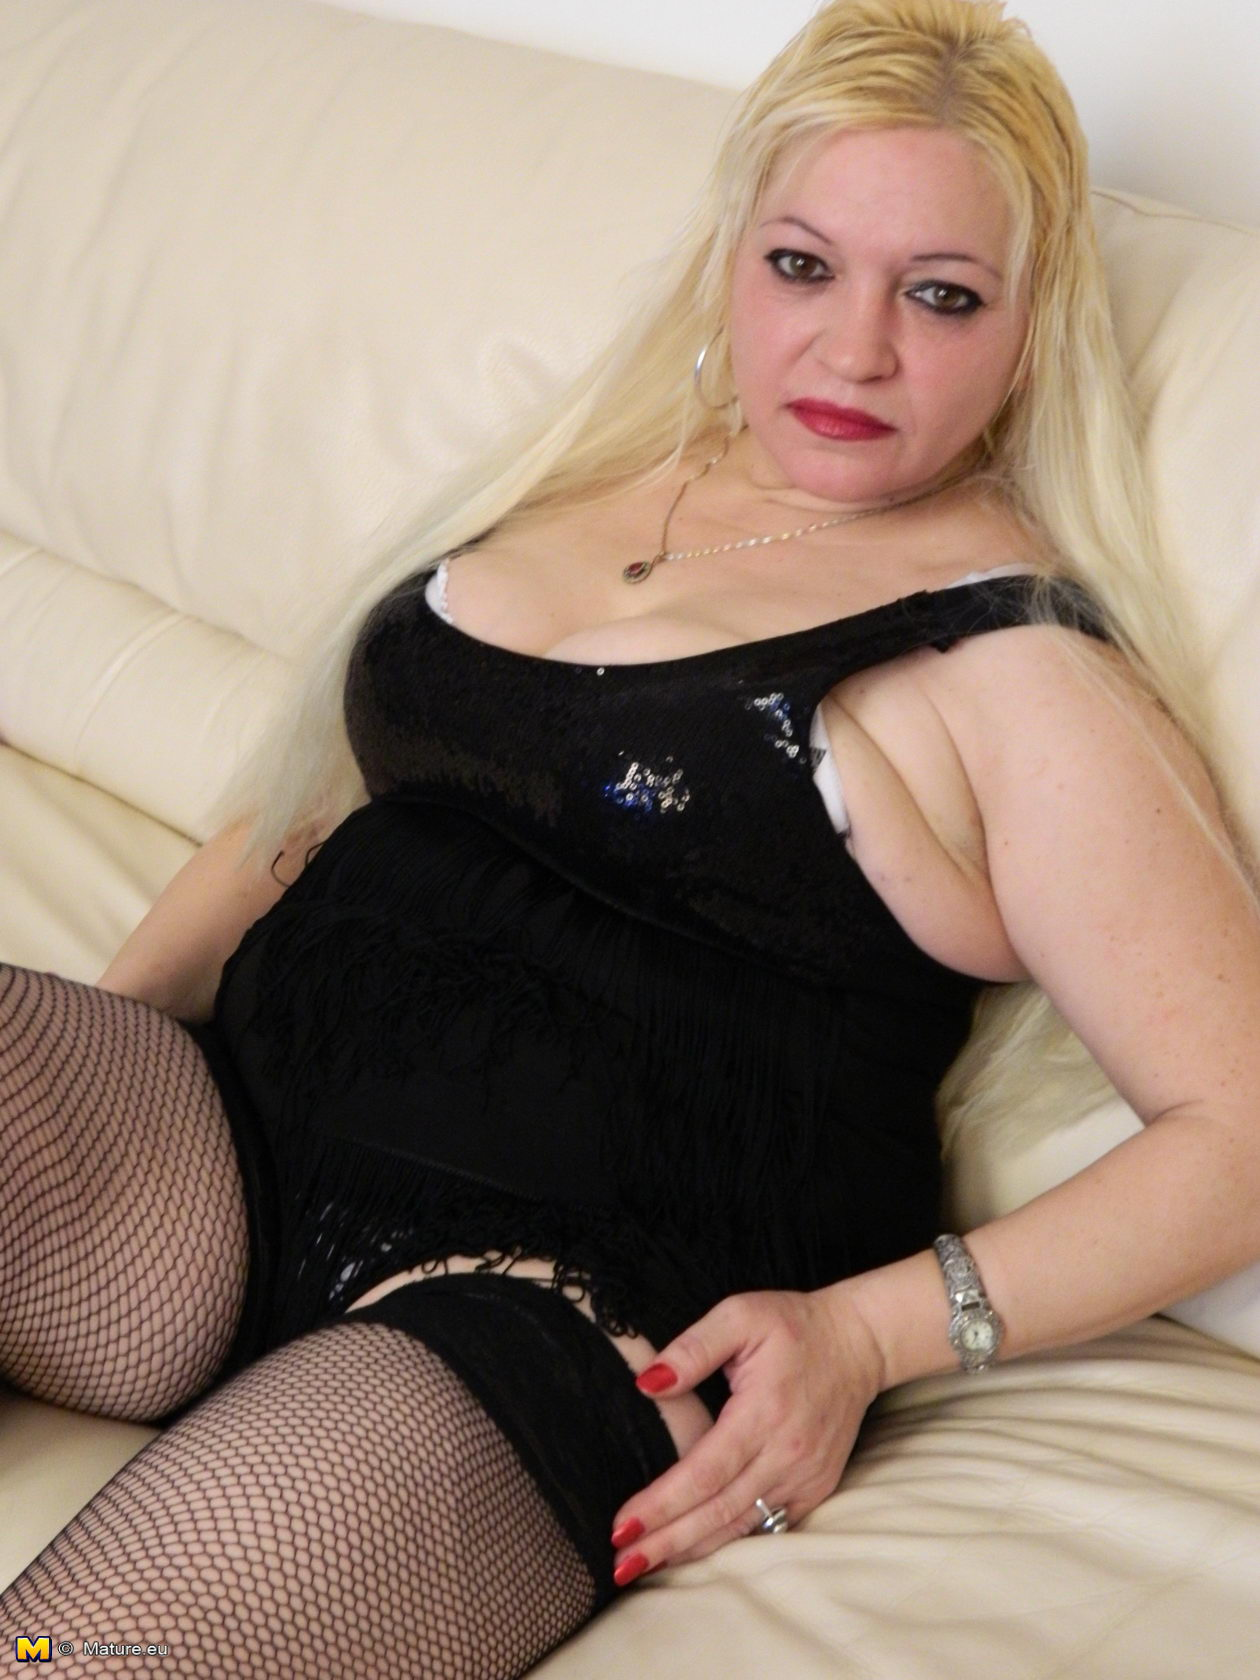 Chubby blonde mature slut in nylons